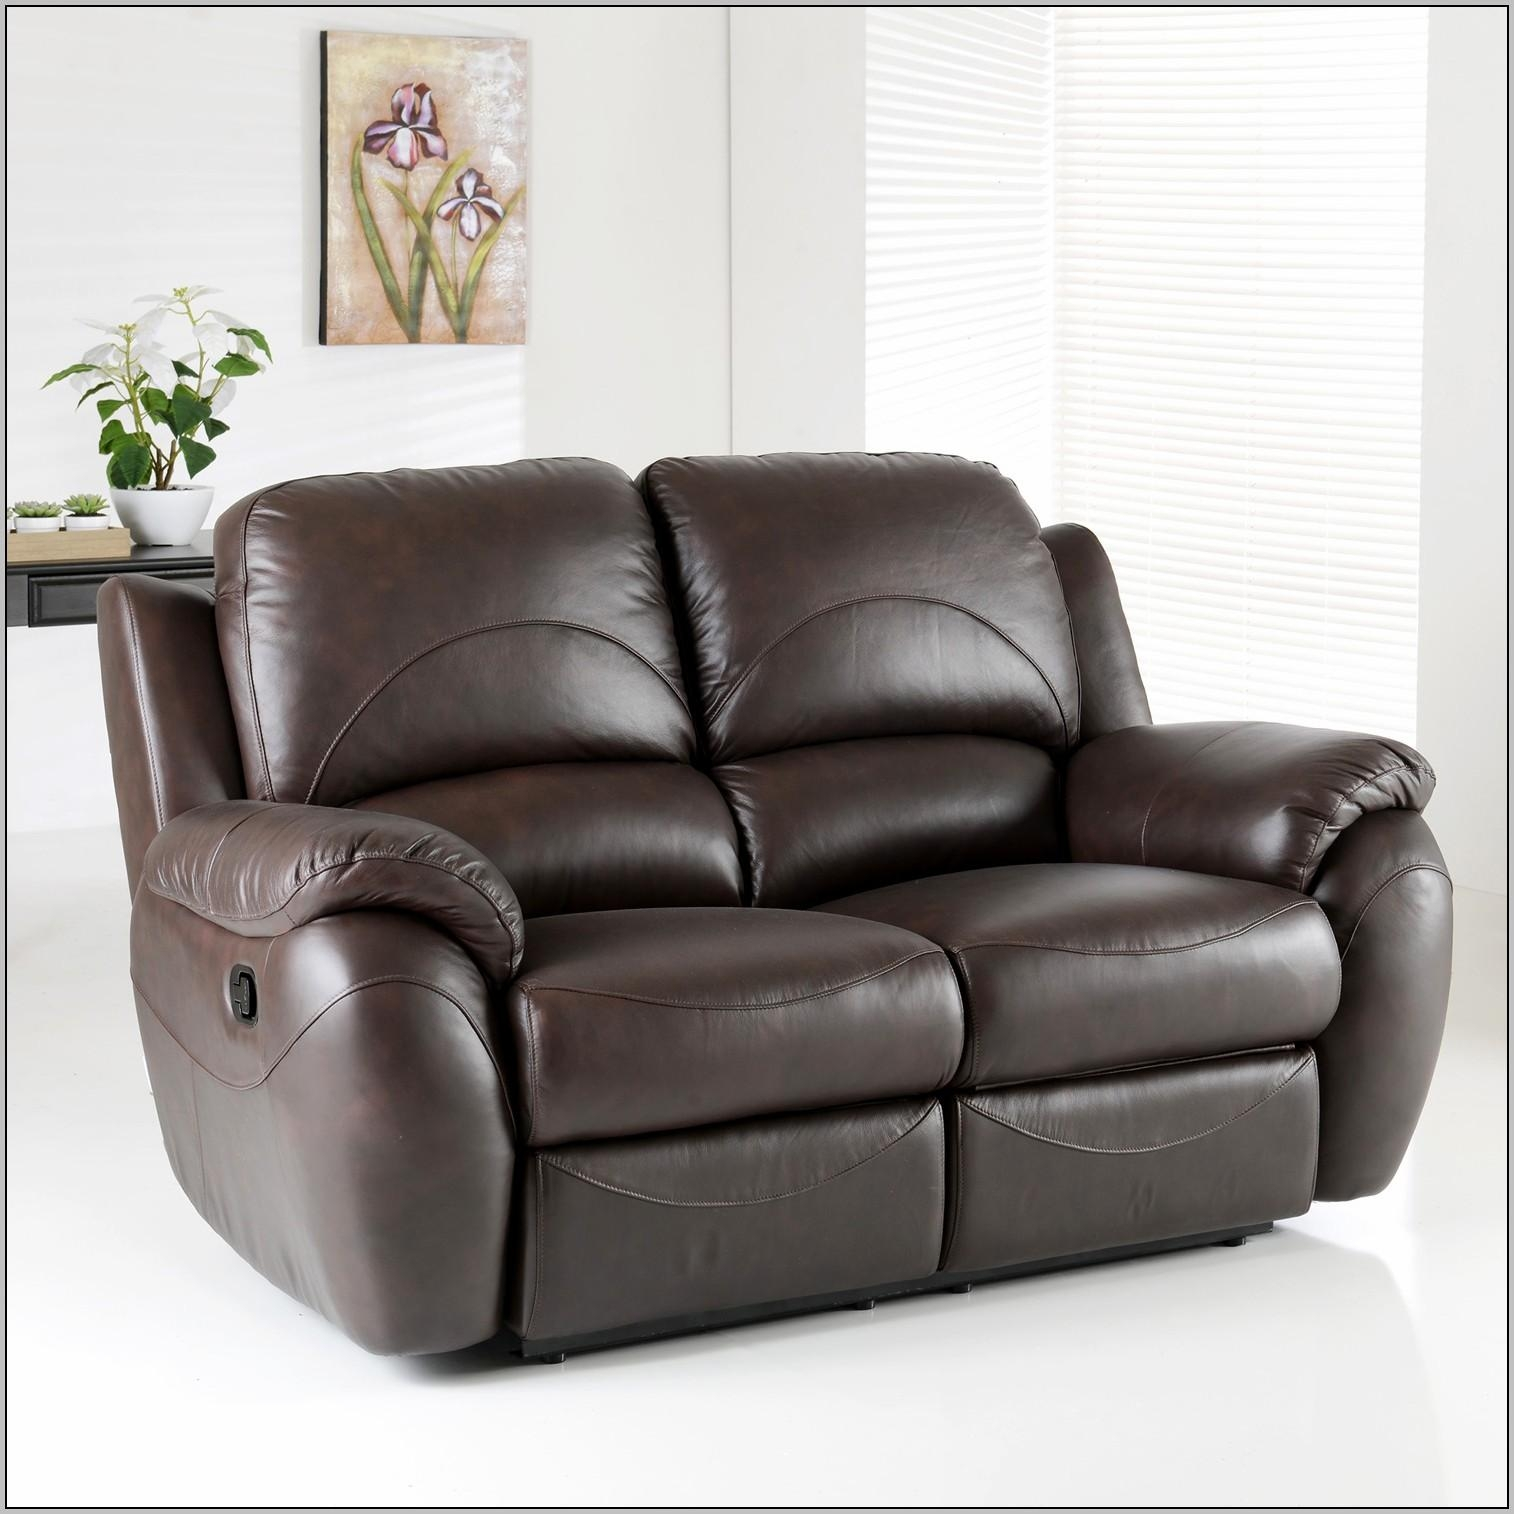 Chinaklsk In 2 Seat Recliner Sofas (Image 4 of 20)